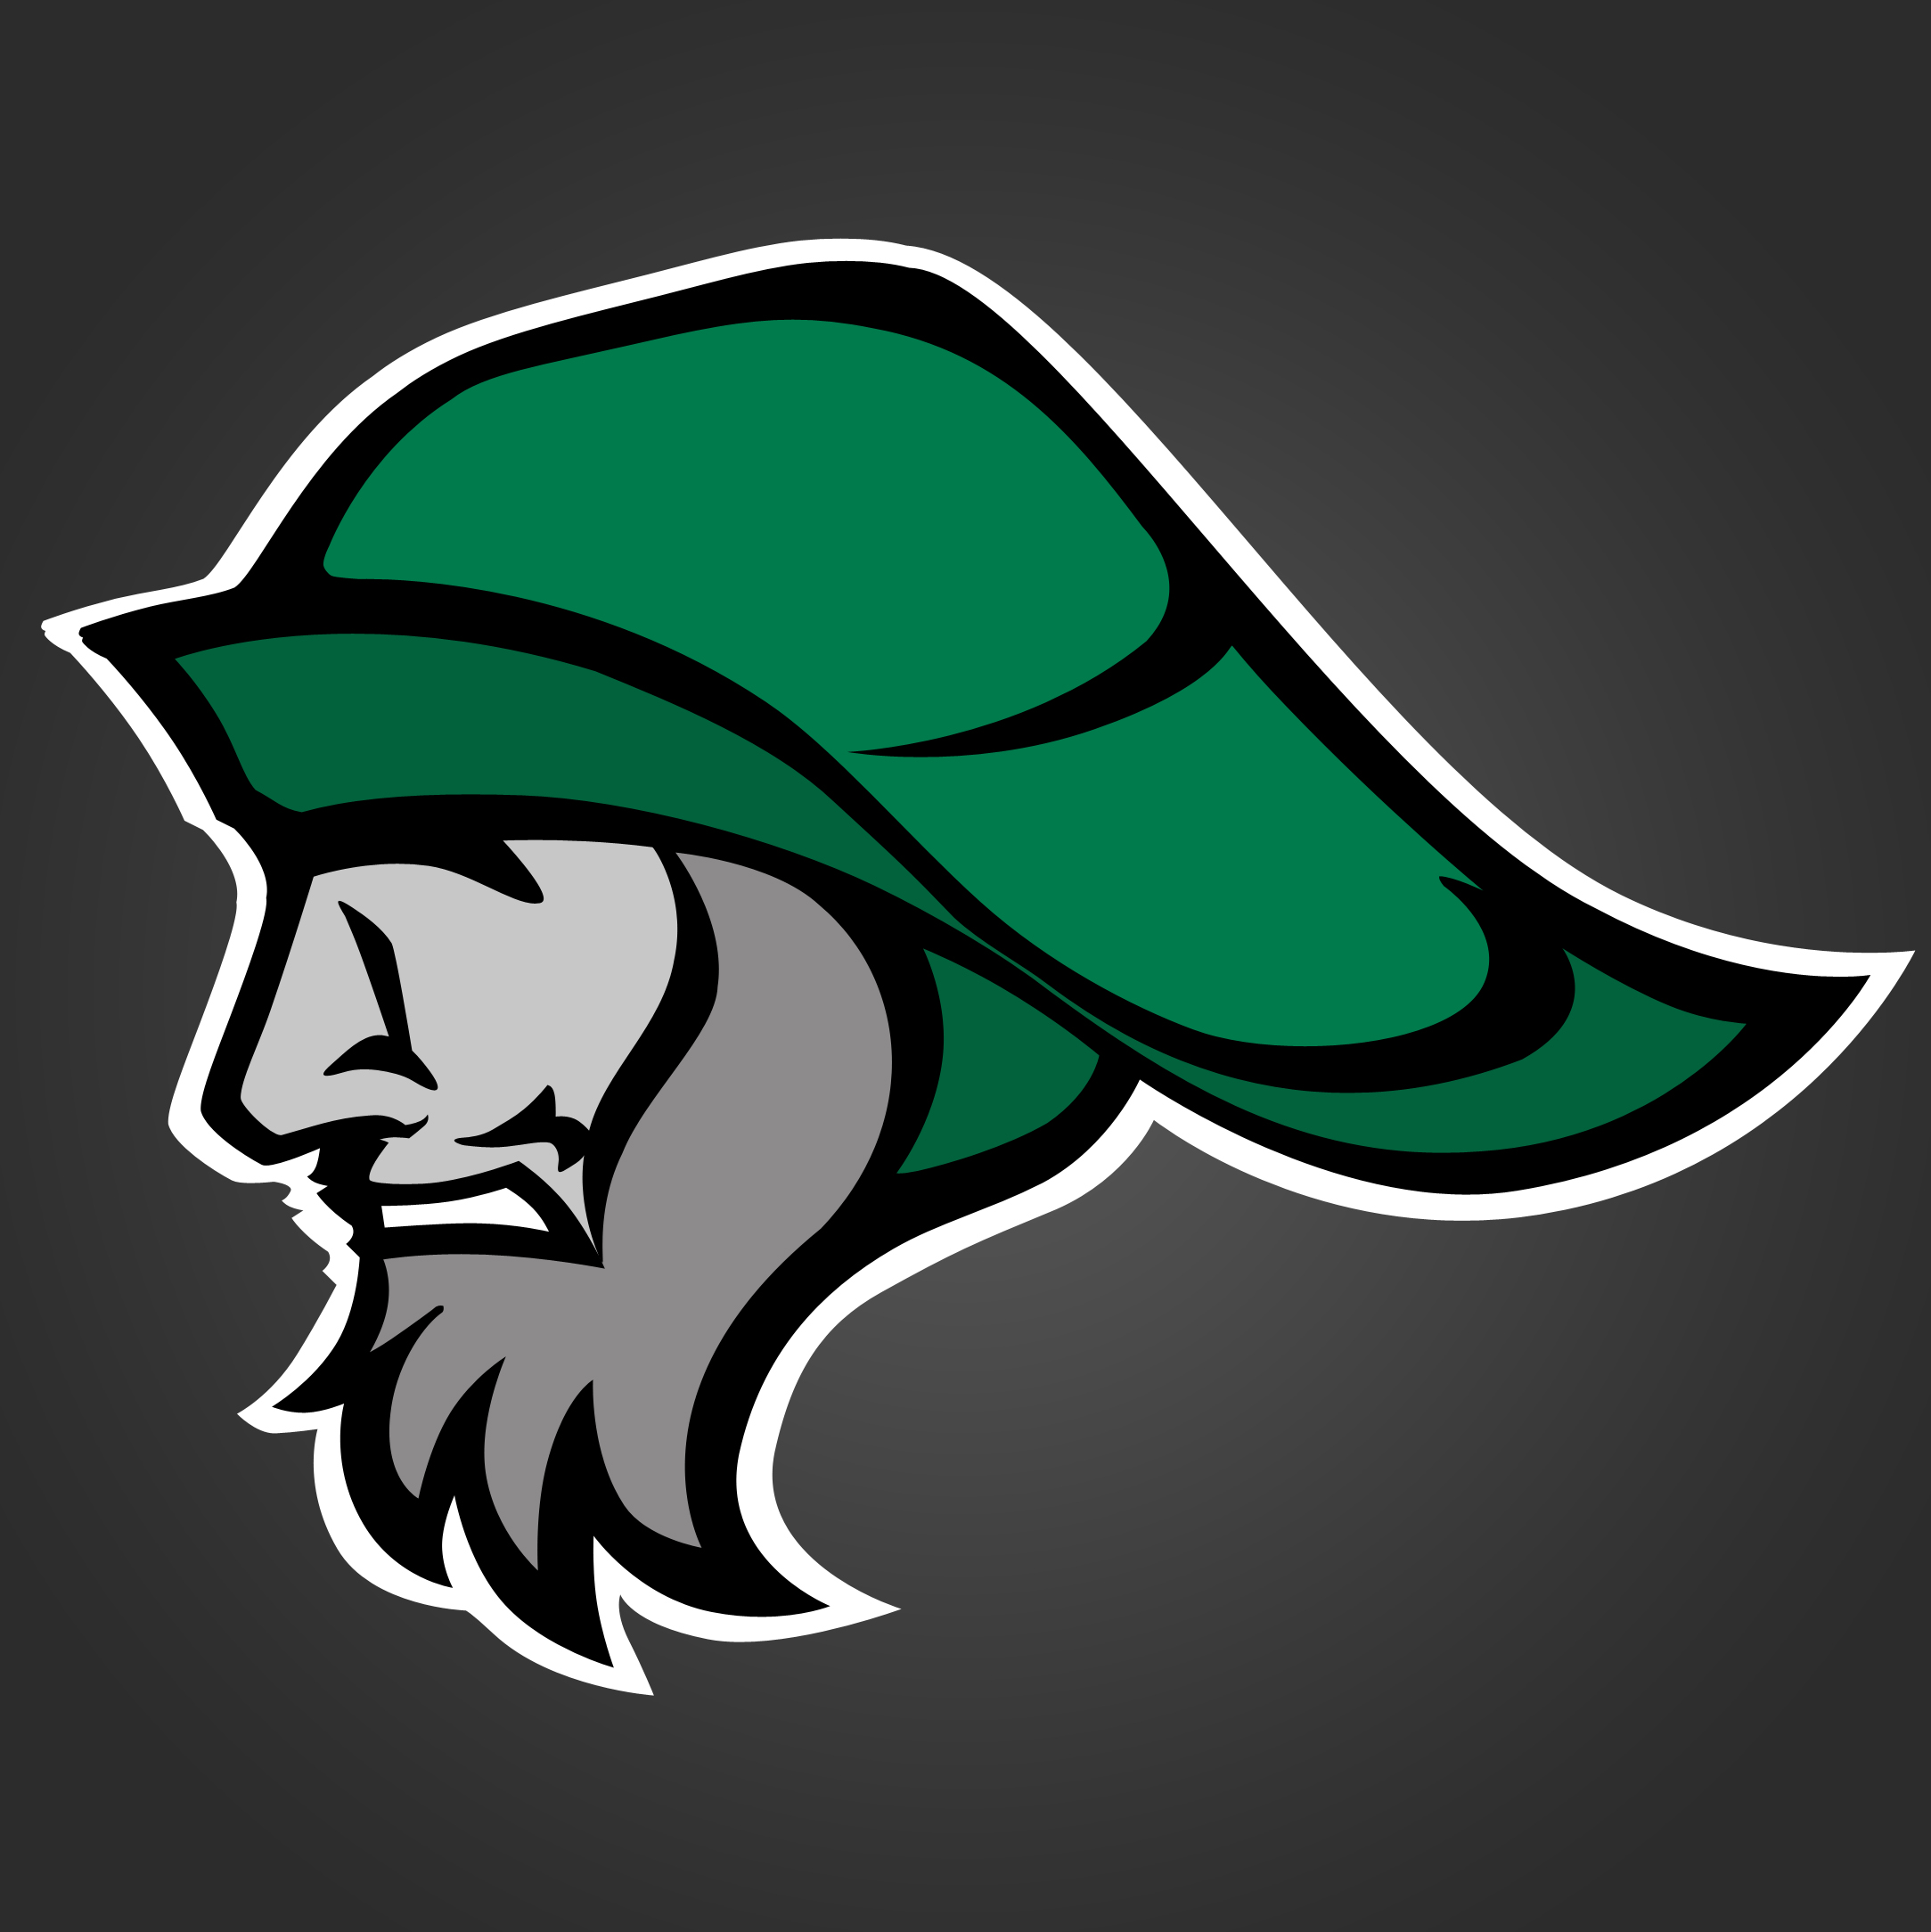 New England Whalers's logo